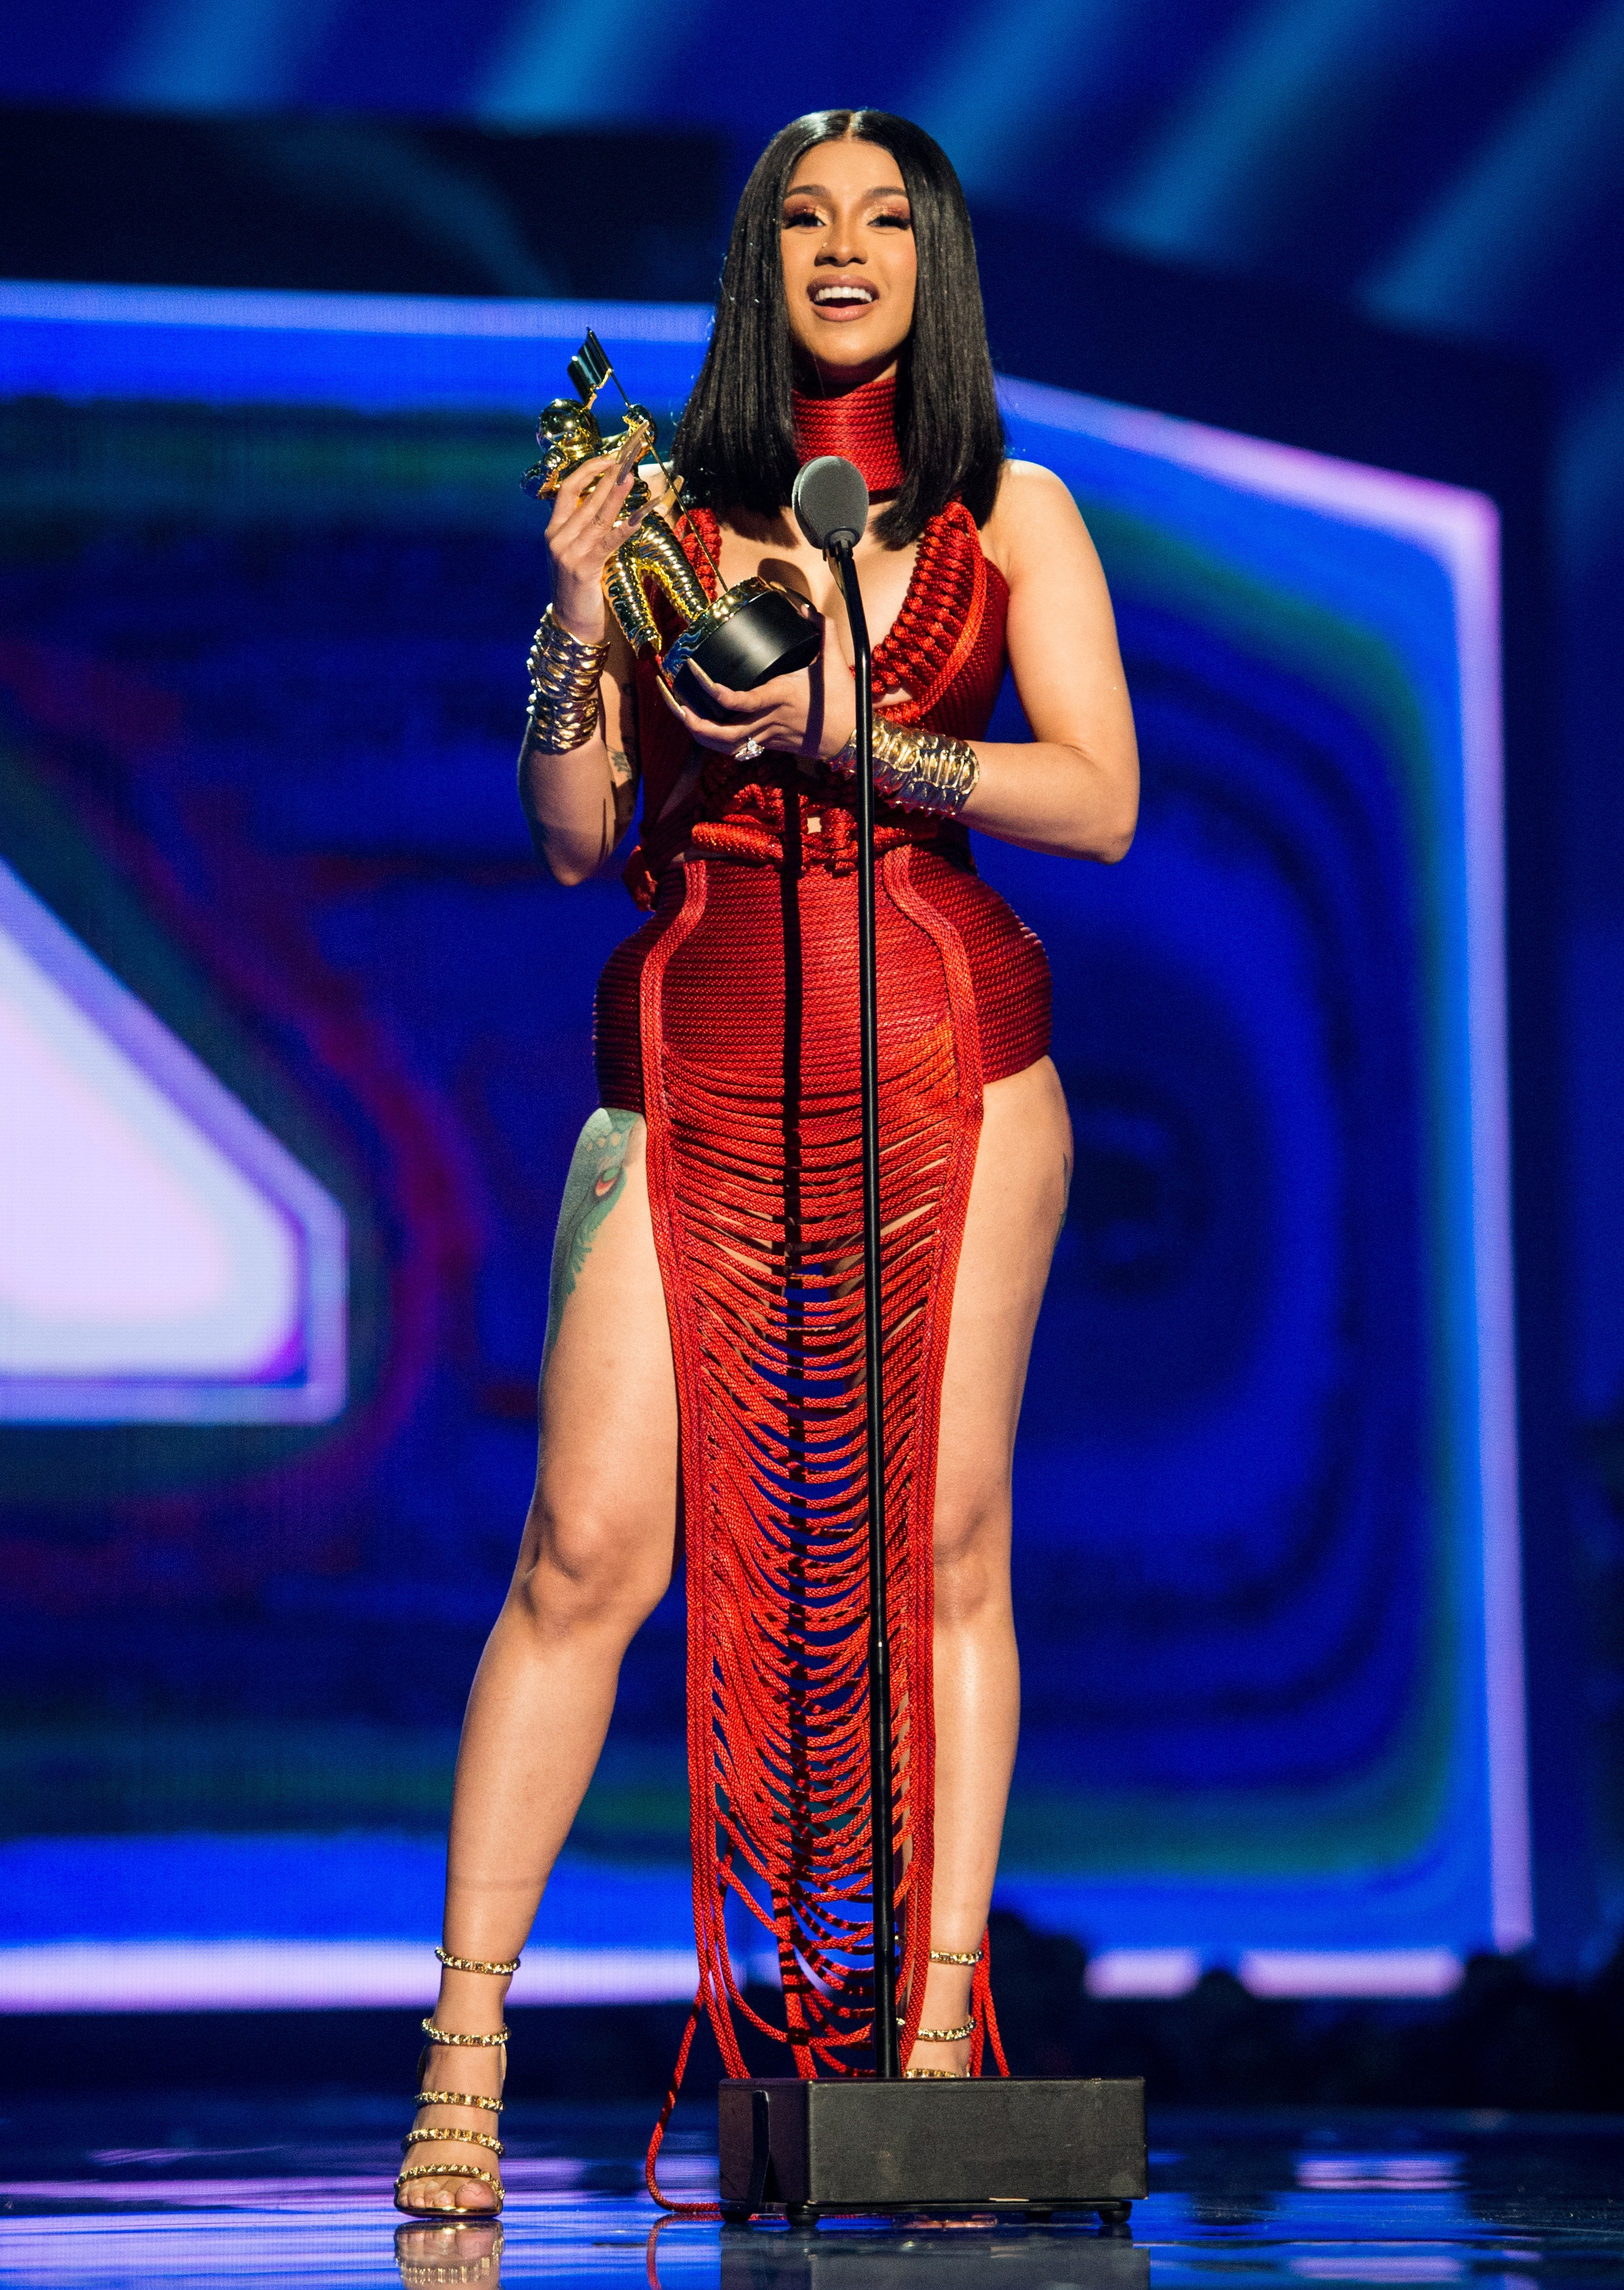 Cardi B at the MTV Video Music Awards in Newark, New Jersey on August 26, 2019 | Photo: Getty Images